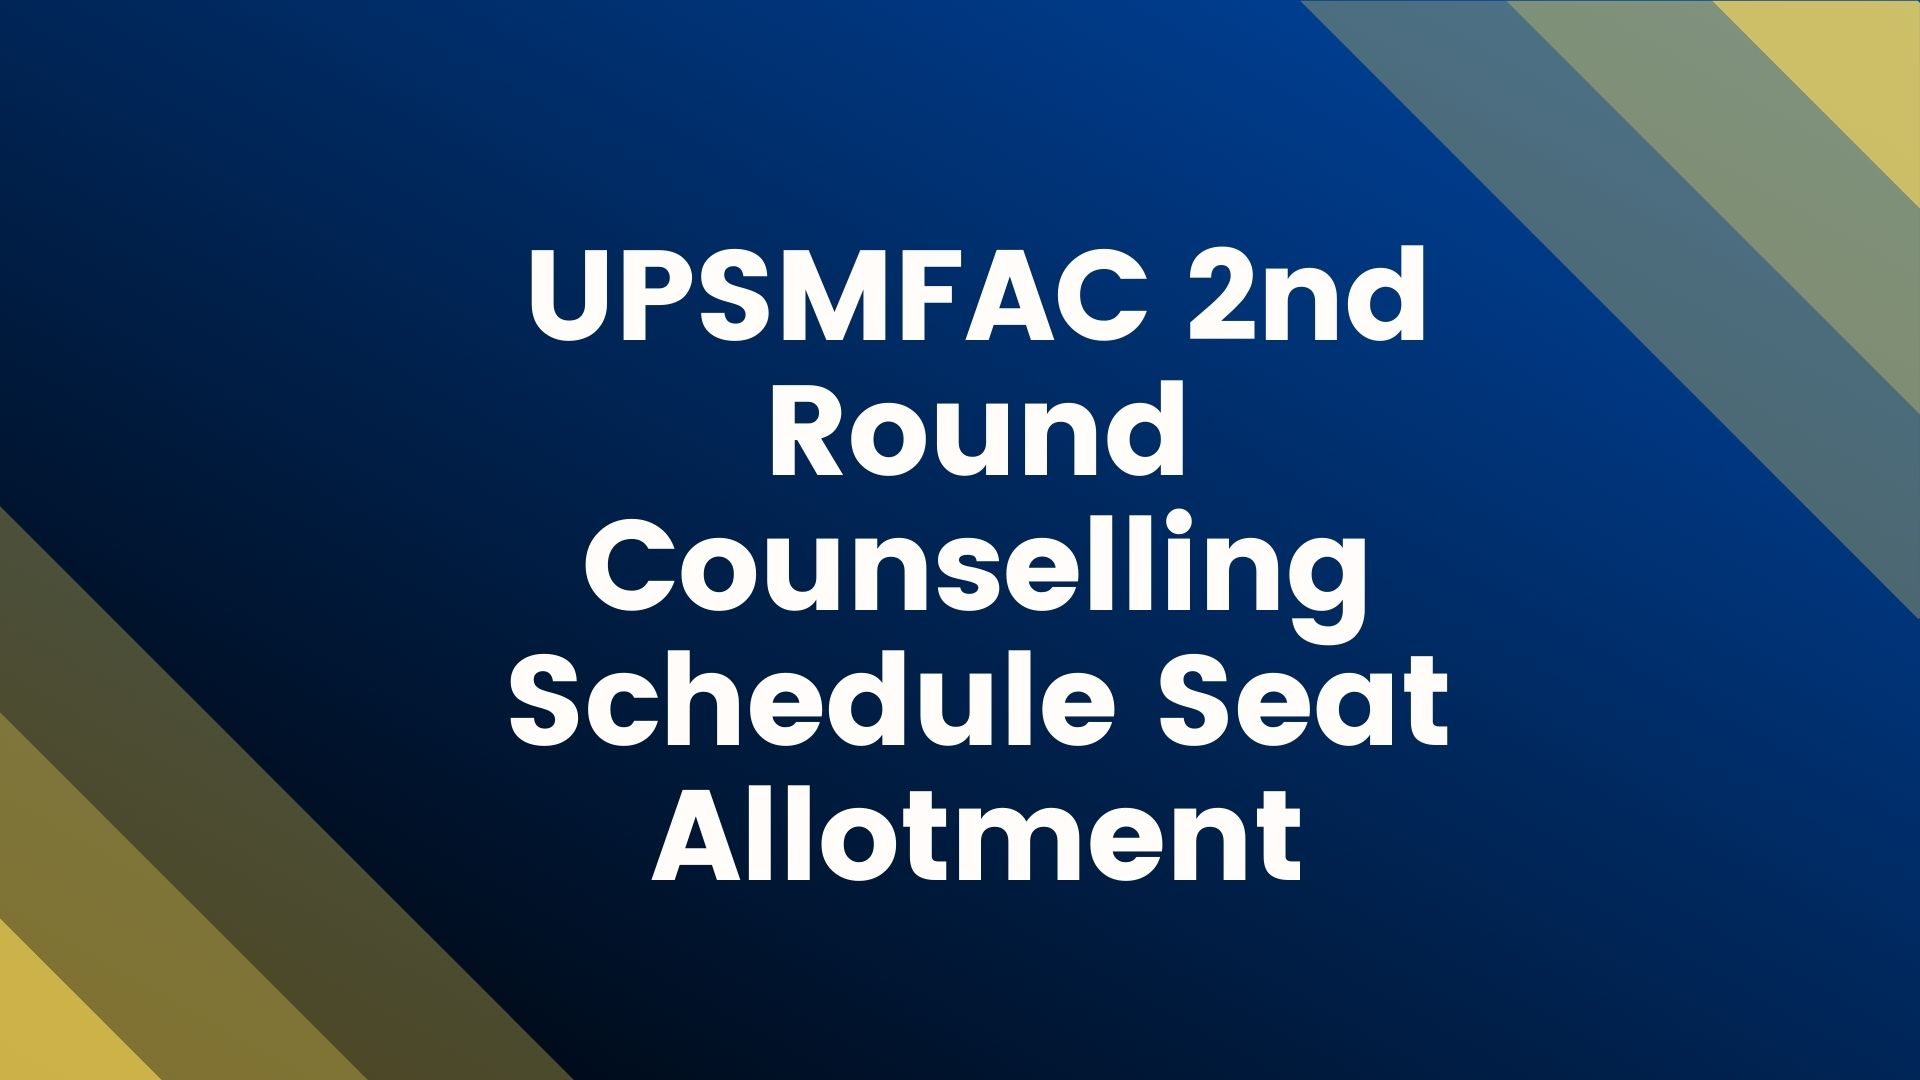 UPSMFAC-2nd-Round-Counselling-Schedule-Seat-Allotment